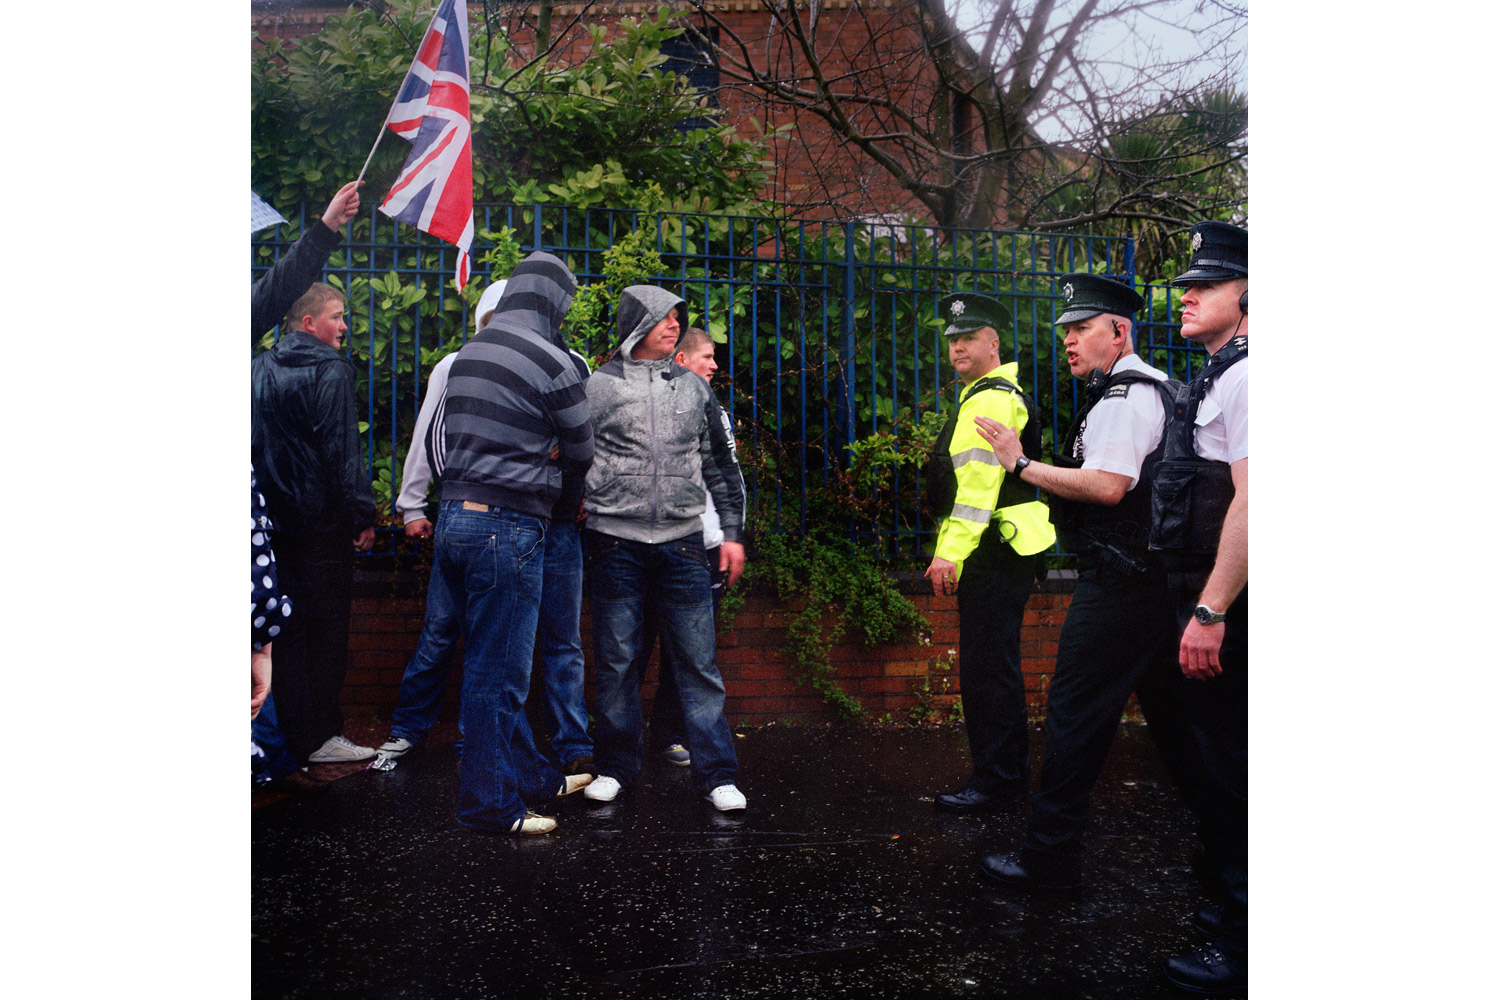 Members of the UVF clash with police at a protest against a Catholic parade. Unlike the UDA, the UVF has not yet engaged in the reimaging process and remains embroiled in allegations of violence, extortion and drugs. 2010.